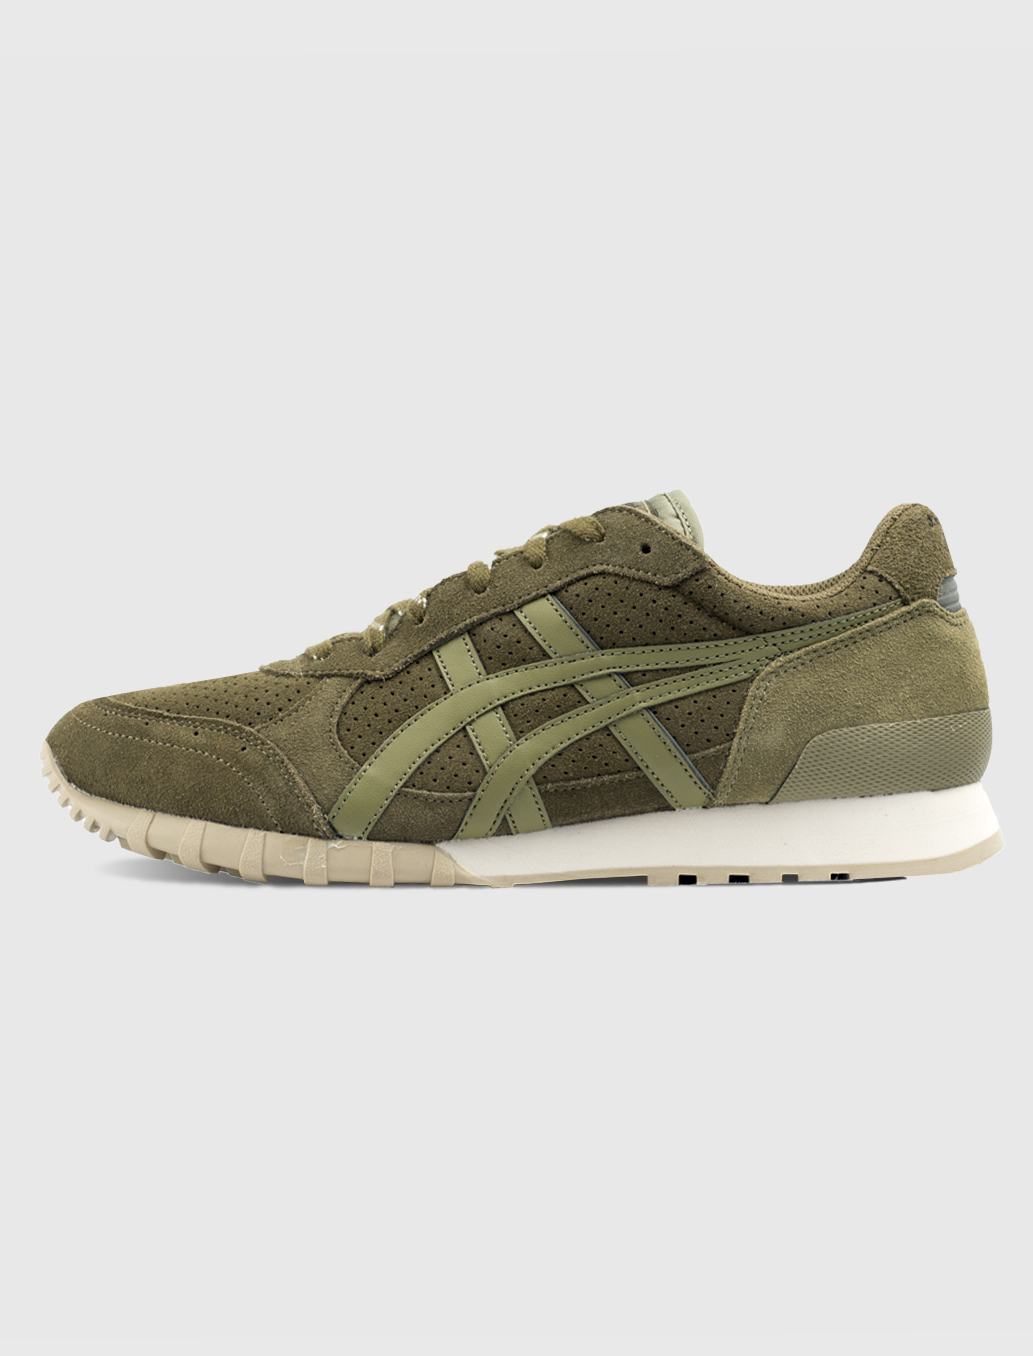 Onitsuka Tiger Colorado '85 olive/light olive